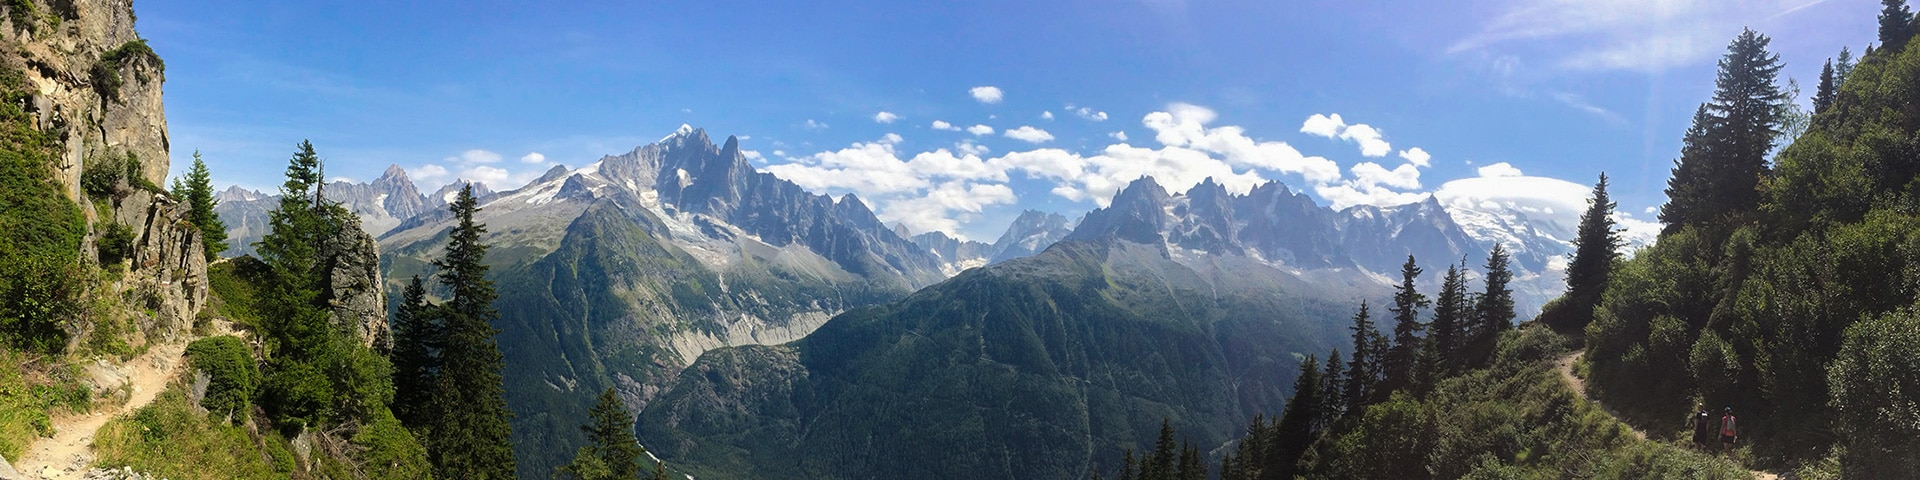 Best hikes around Mont Blanc, Chamonix, France